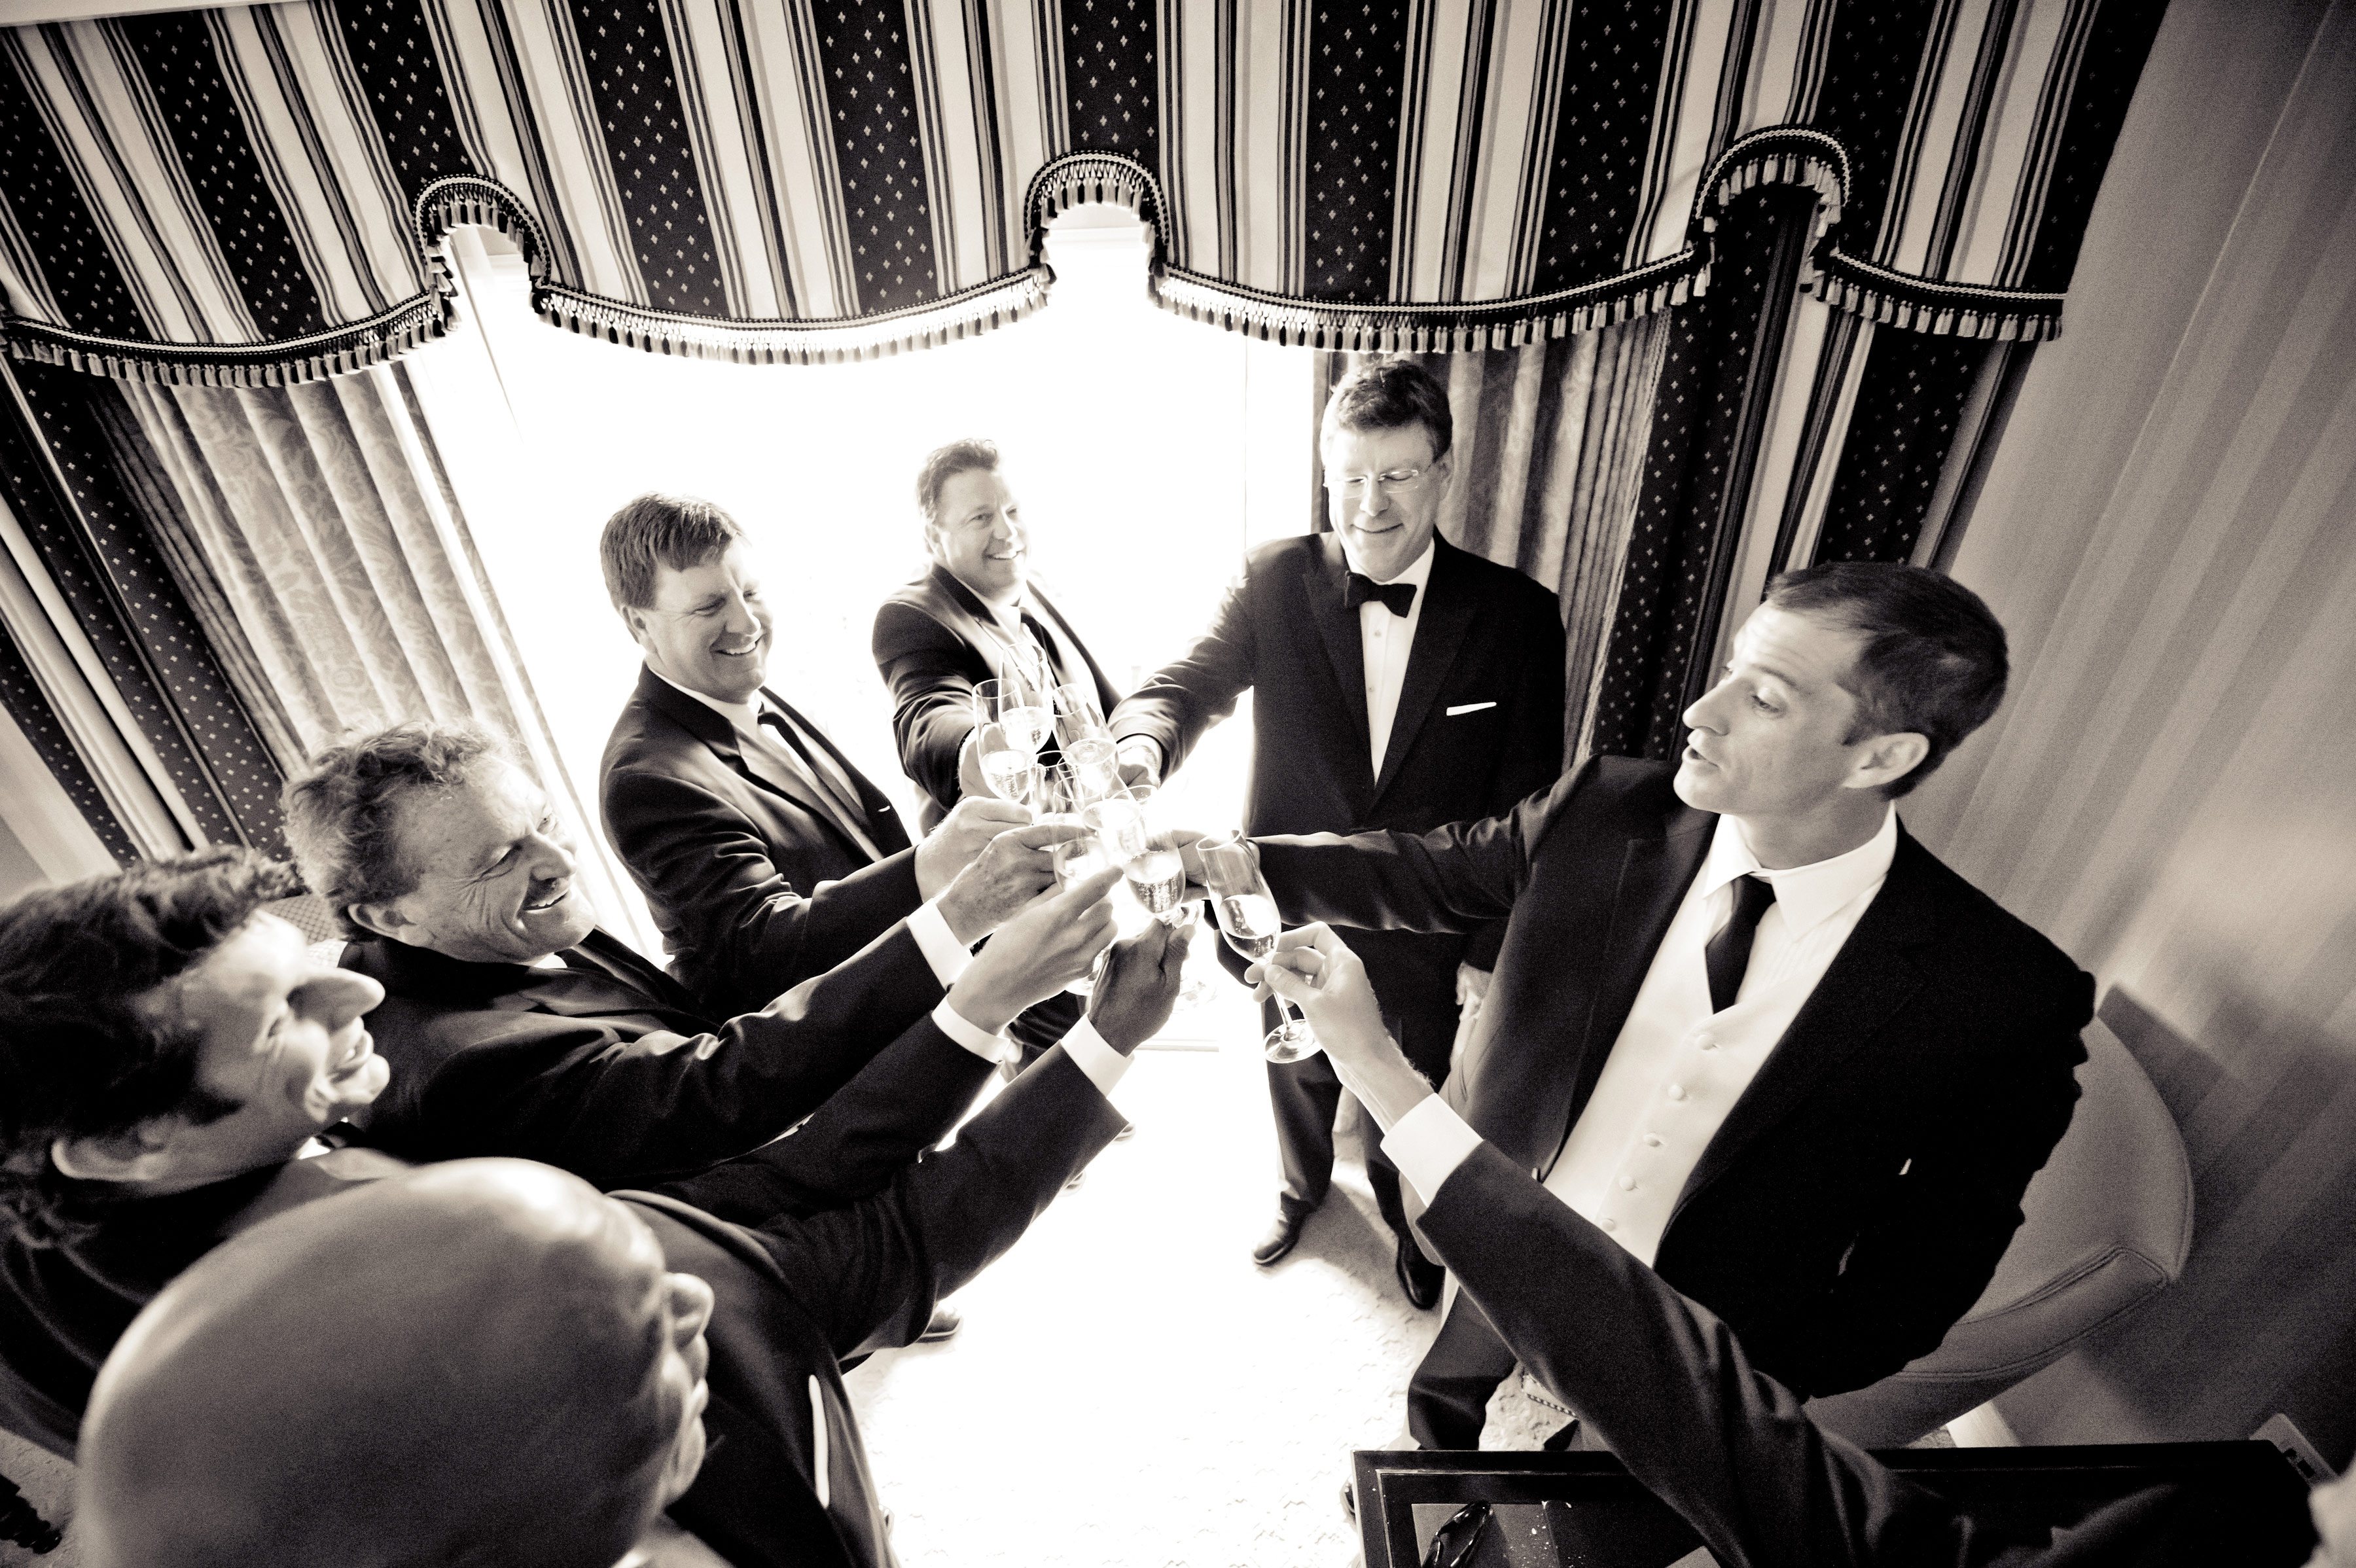 fun and playful wedding photo poses for grooms and groomsmen